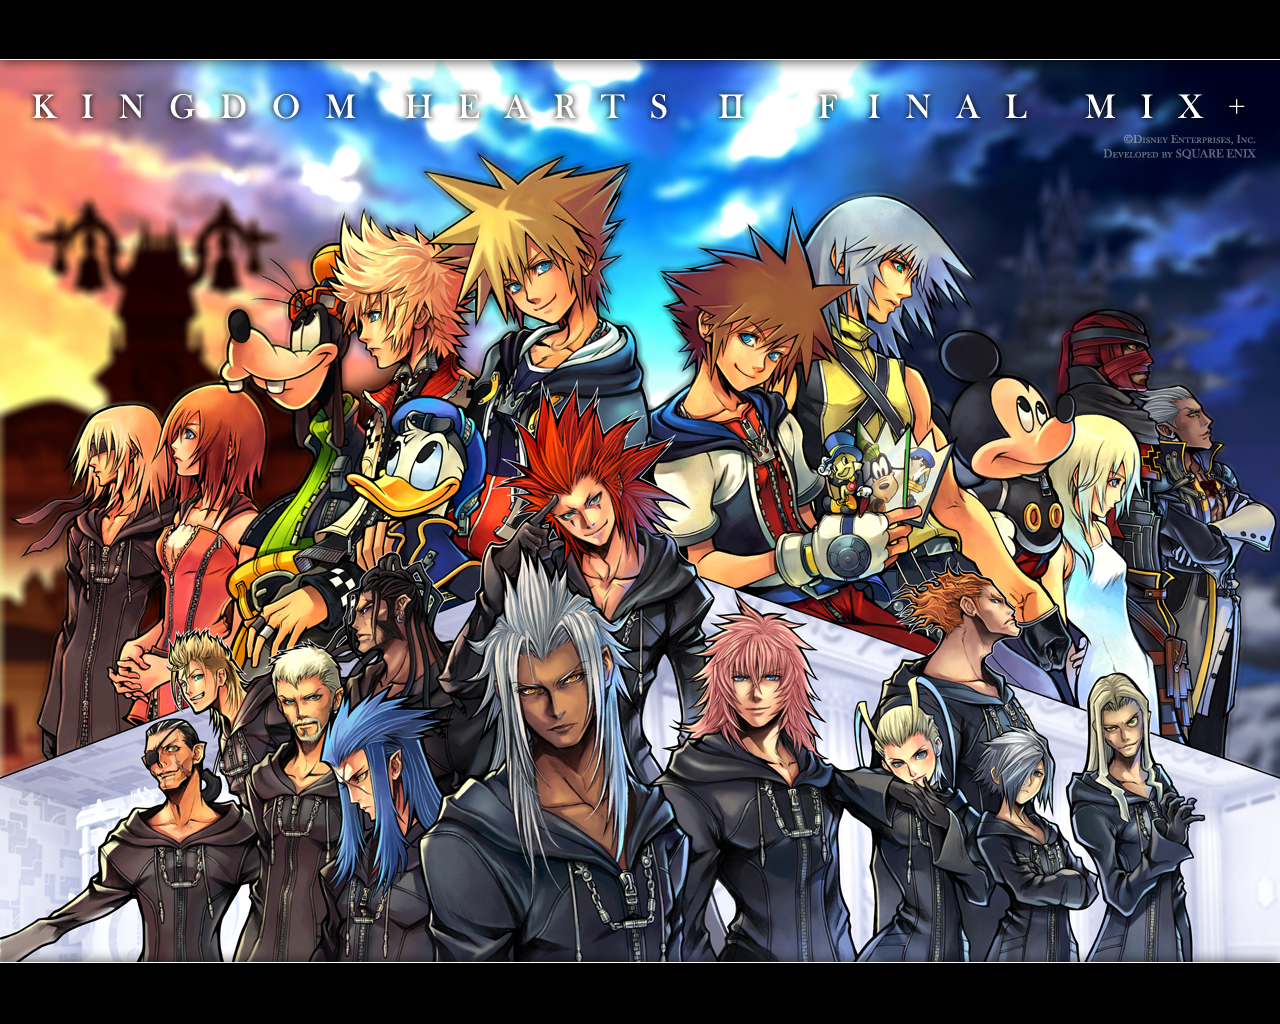 Kingdom Hearts Wallpaper PSP Gear   PSP Games Download 1280x1024